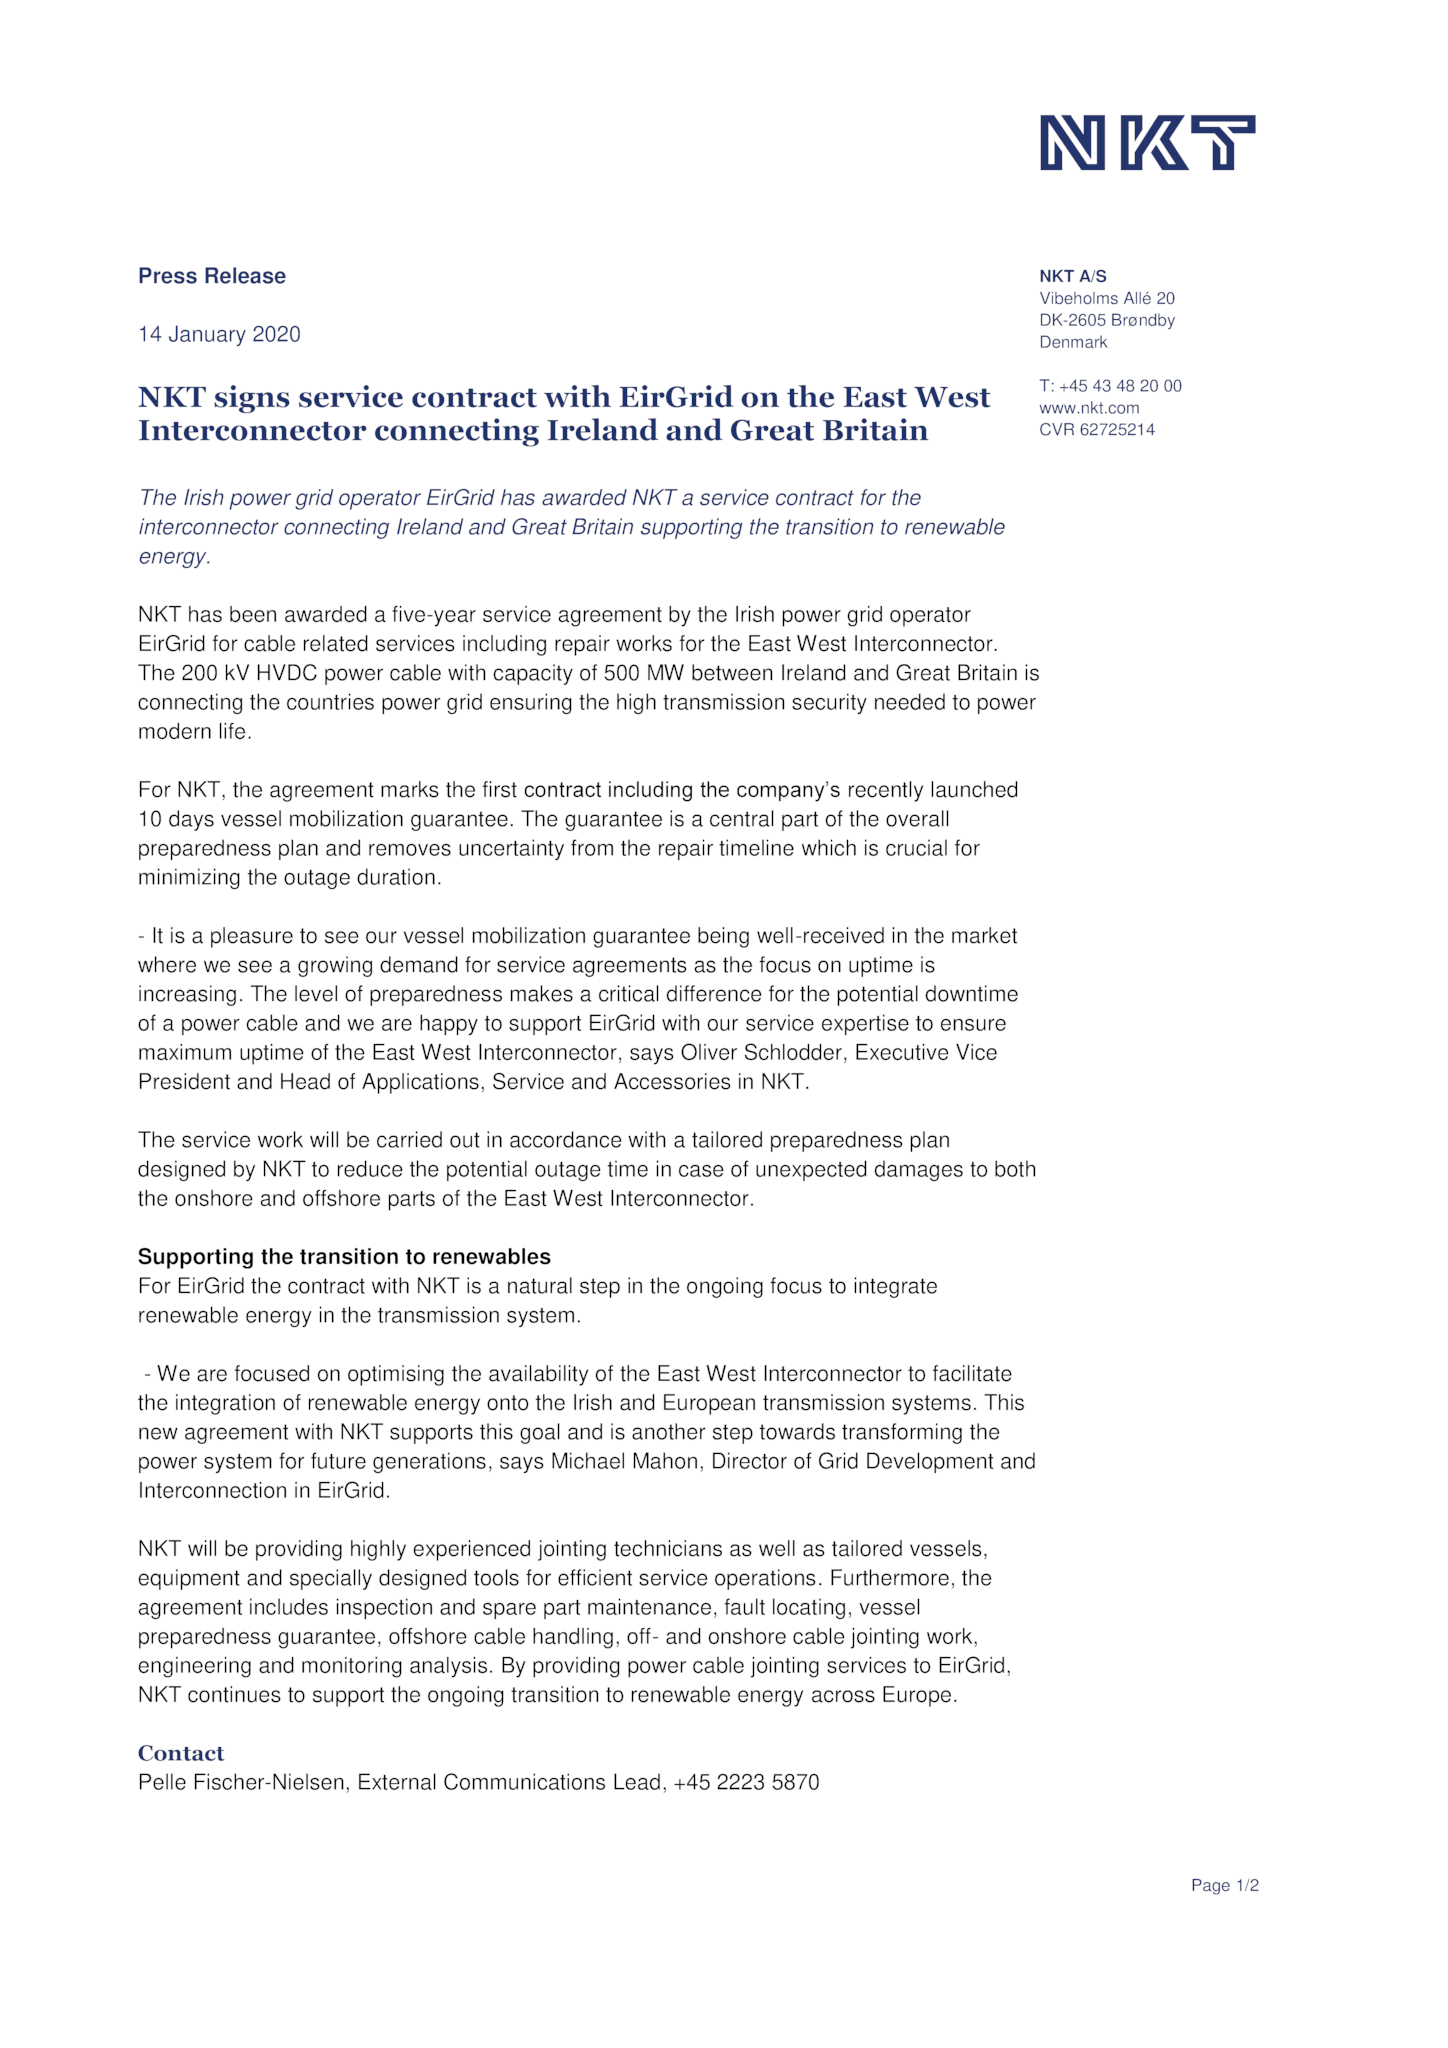 NKT_signs_service_contract_with_EirGrid_on_the_East_West_Interconnector.pdf